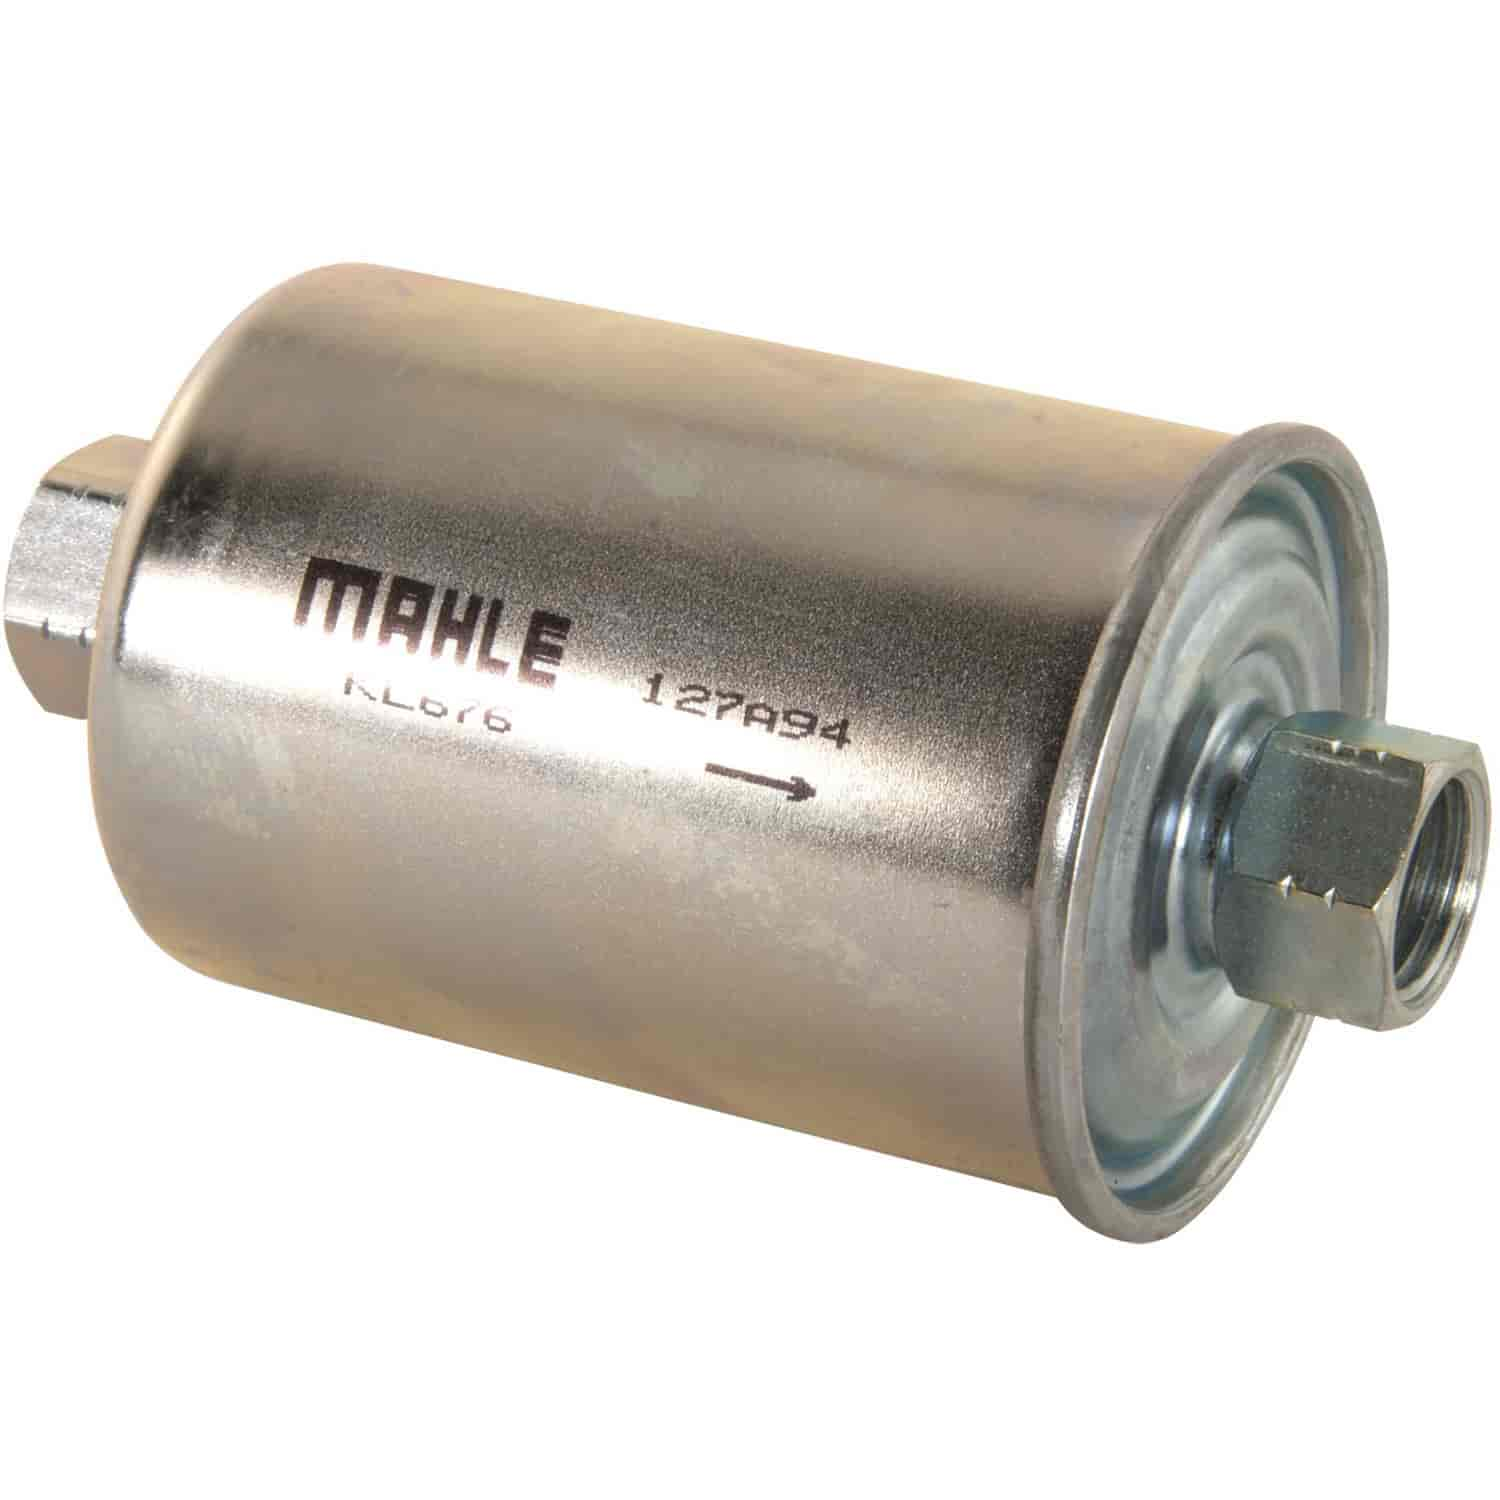 Clevite Mahle Kl676 Fuel Filter 1984 2009 Various Buick Isuzu Filters